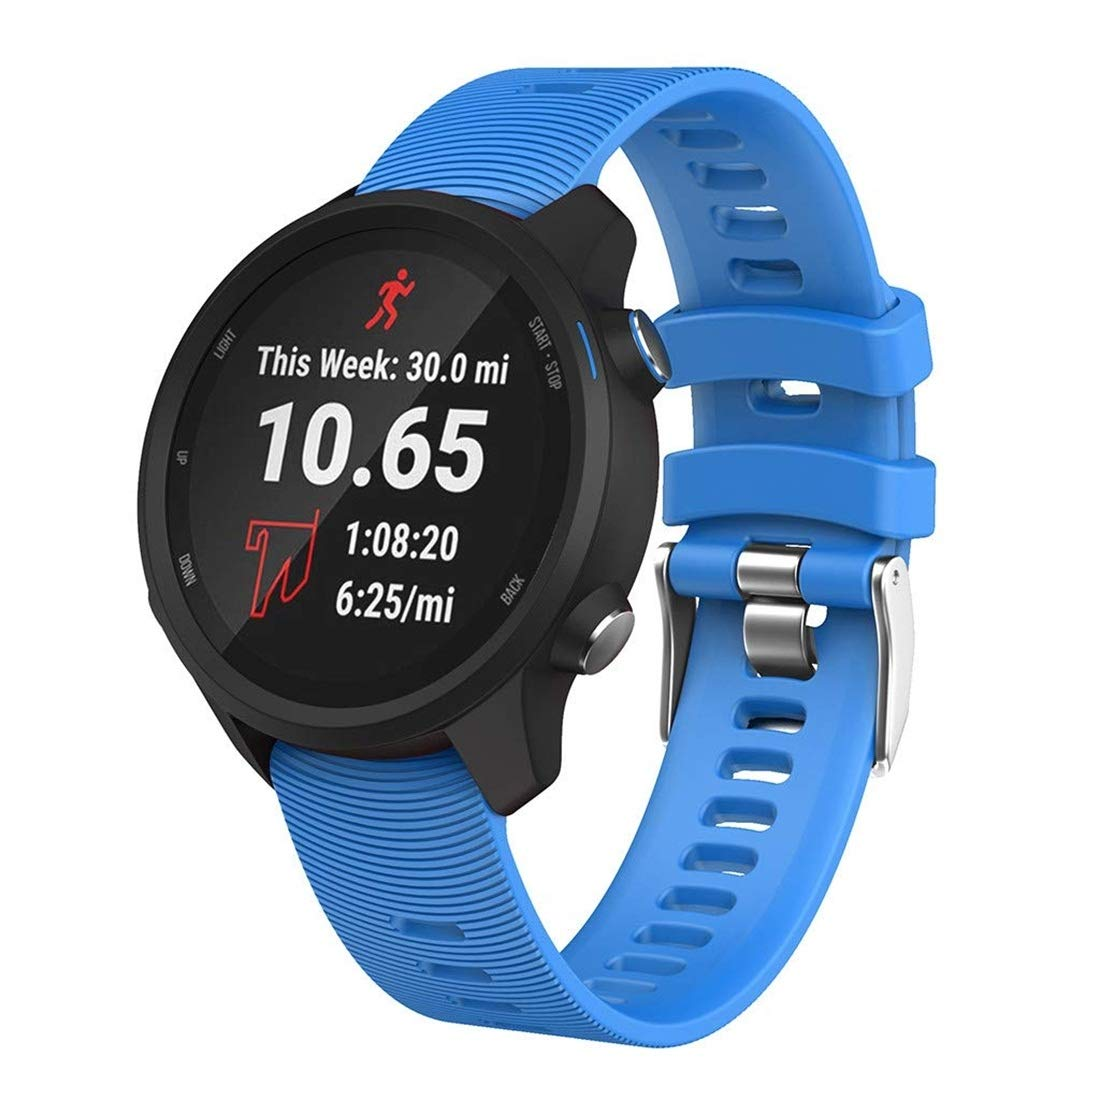 Smart Watch Silicone Wrist Strap Watchband for Garmin Forerunner 245 Premium Quality (Color : Sky Blue) by GuiPing